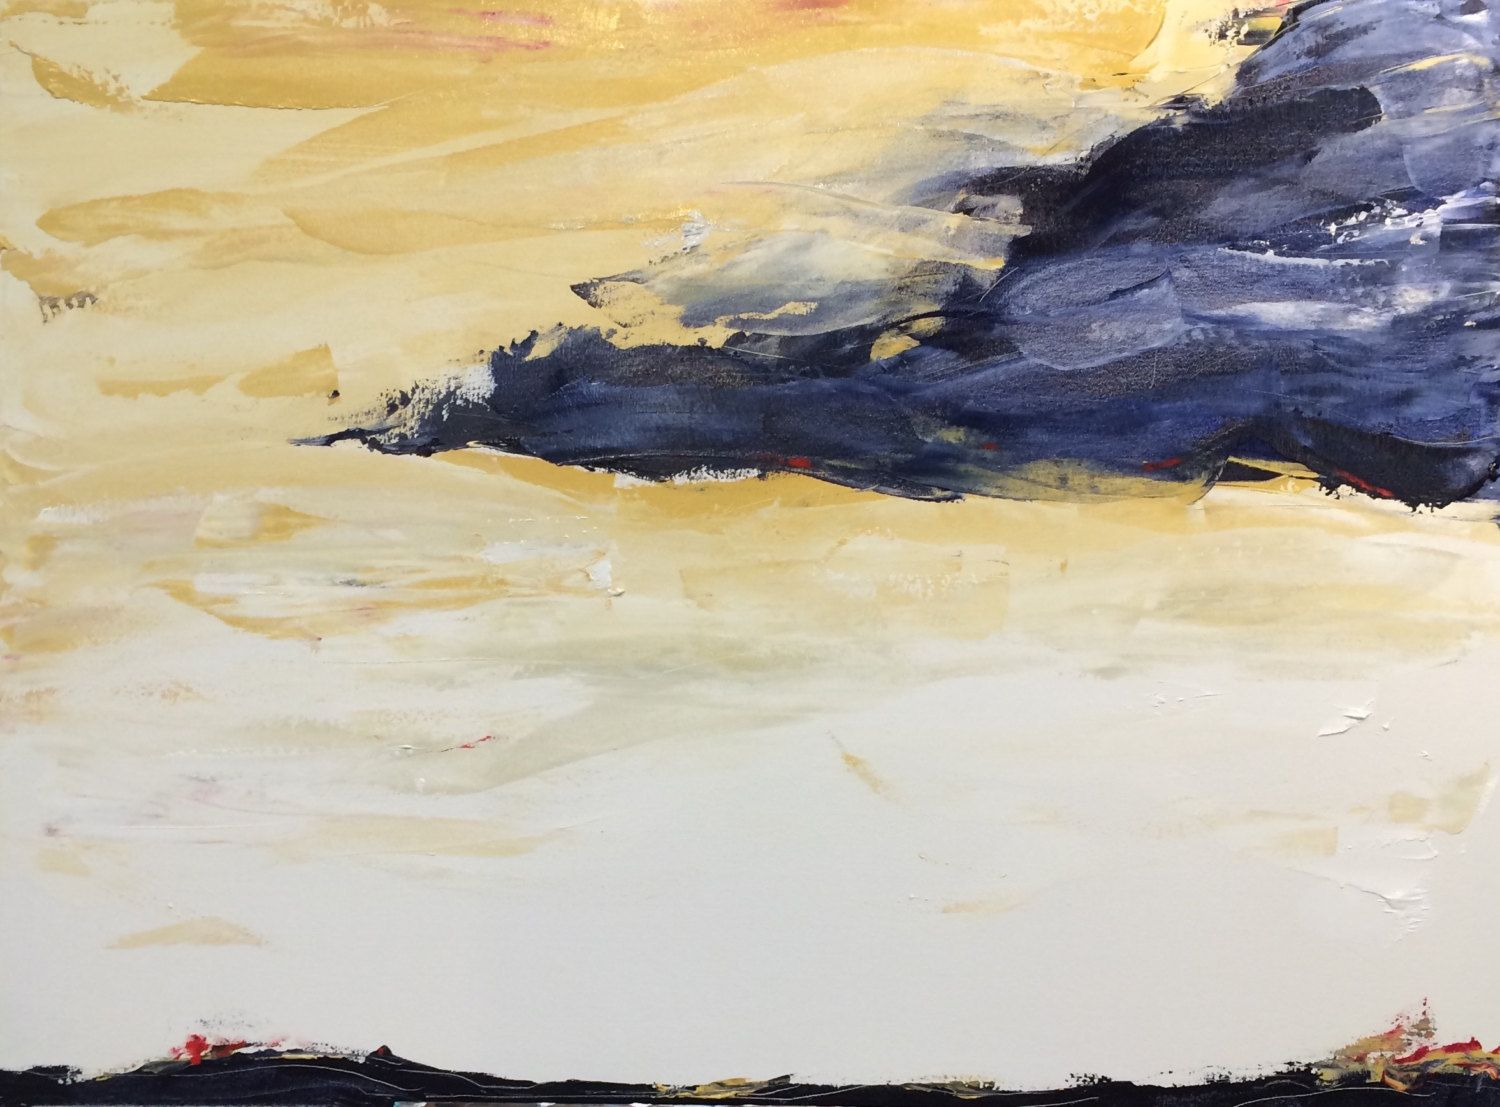 Soft waves and colors in an abstract painting with a landscape feel ...